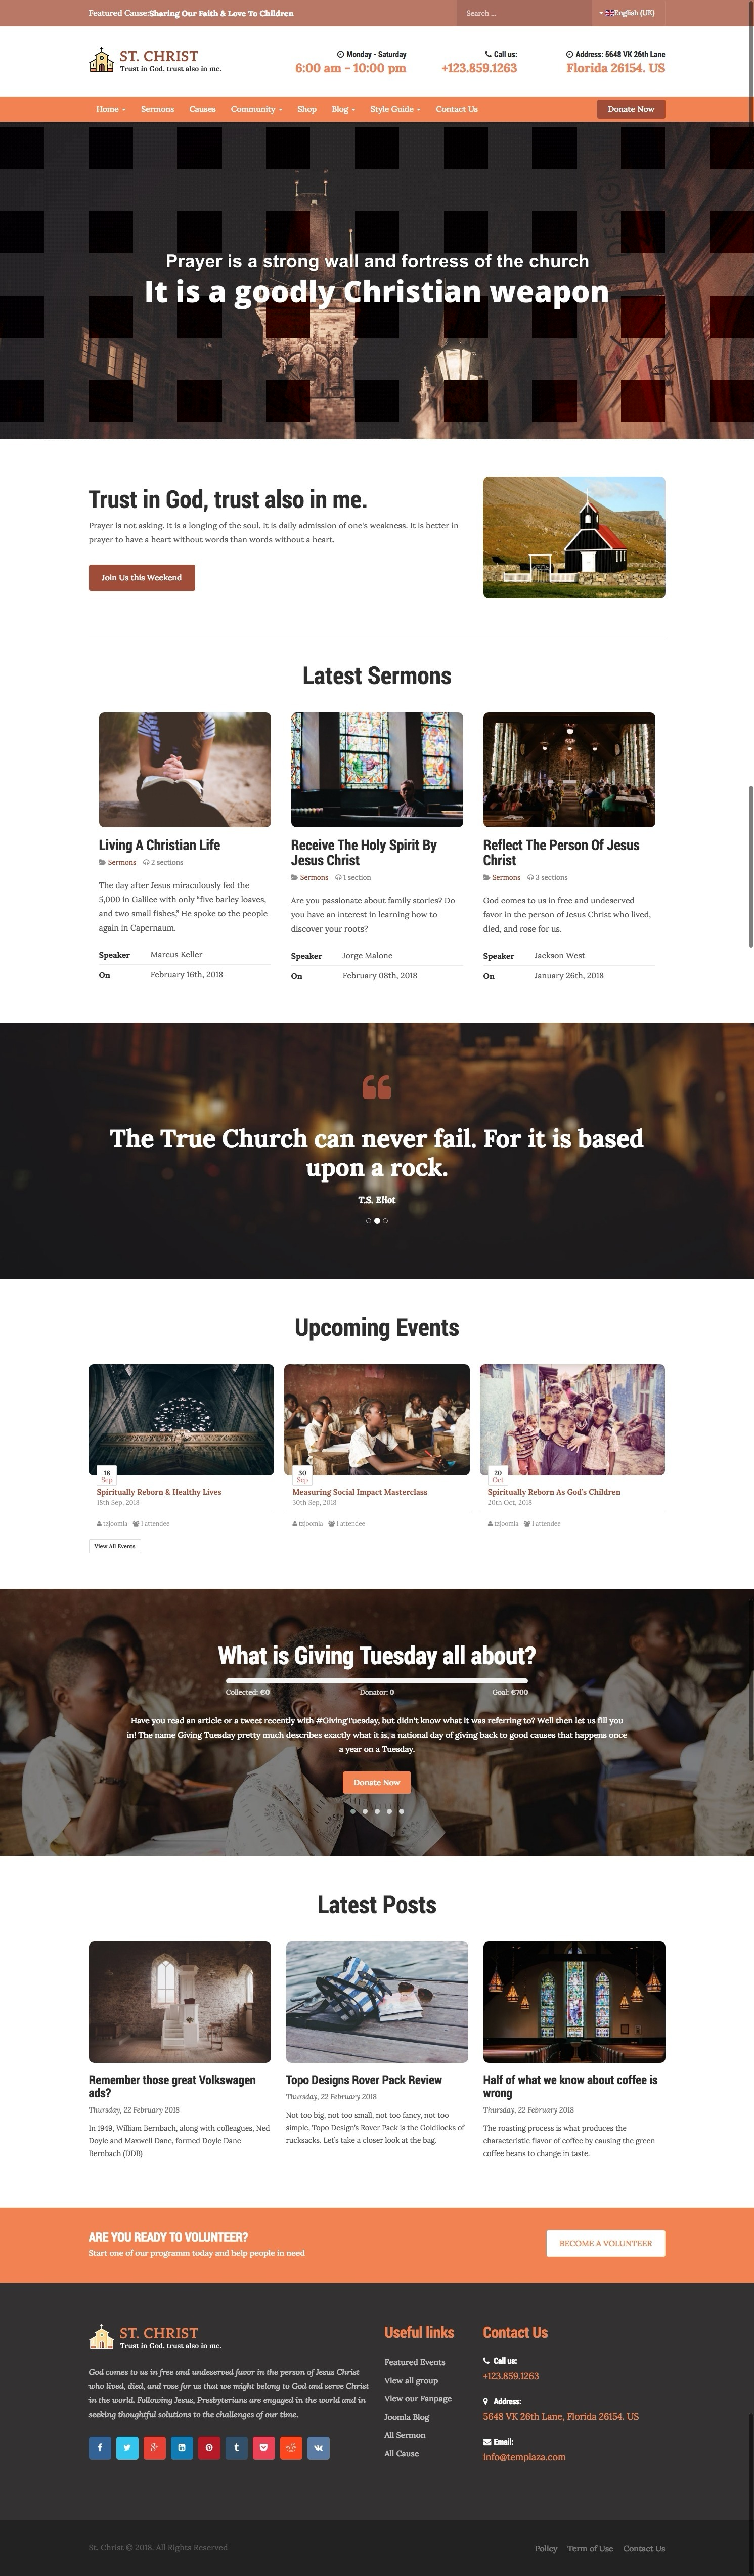 St Christ Church Charity Joomla Template By Templaza Themeforest